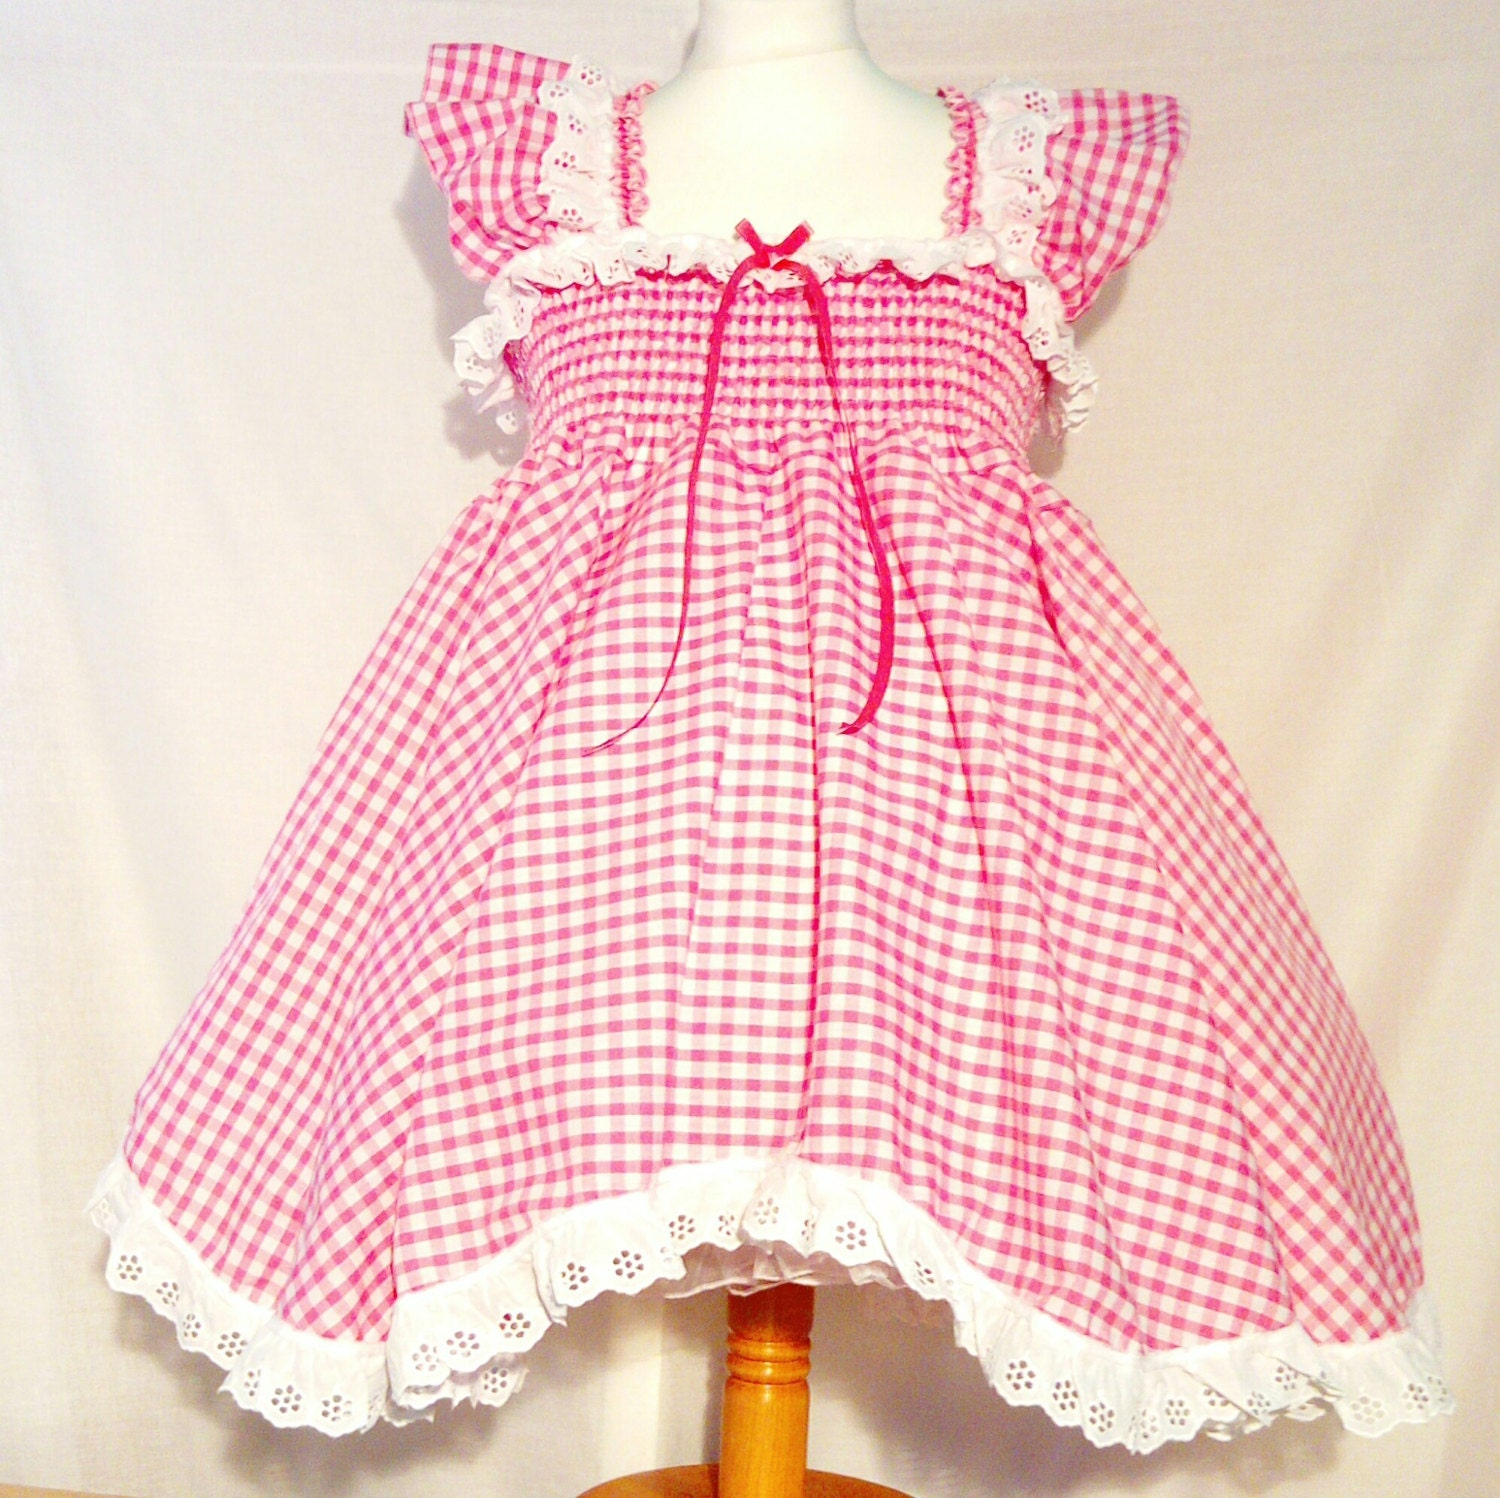 All sizes 40 GBP Adult Baby Sissy Short Dress in Pink Gingham